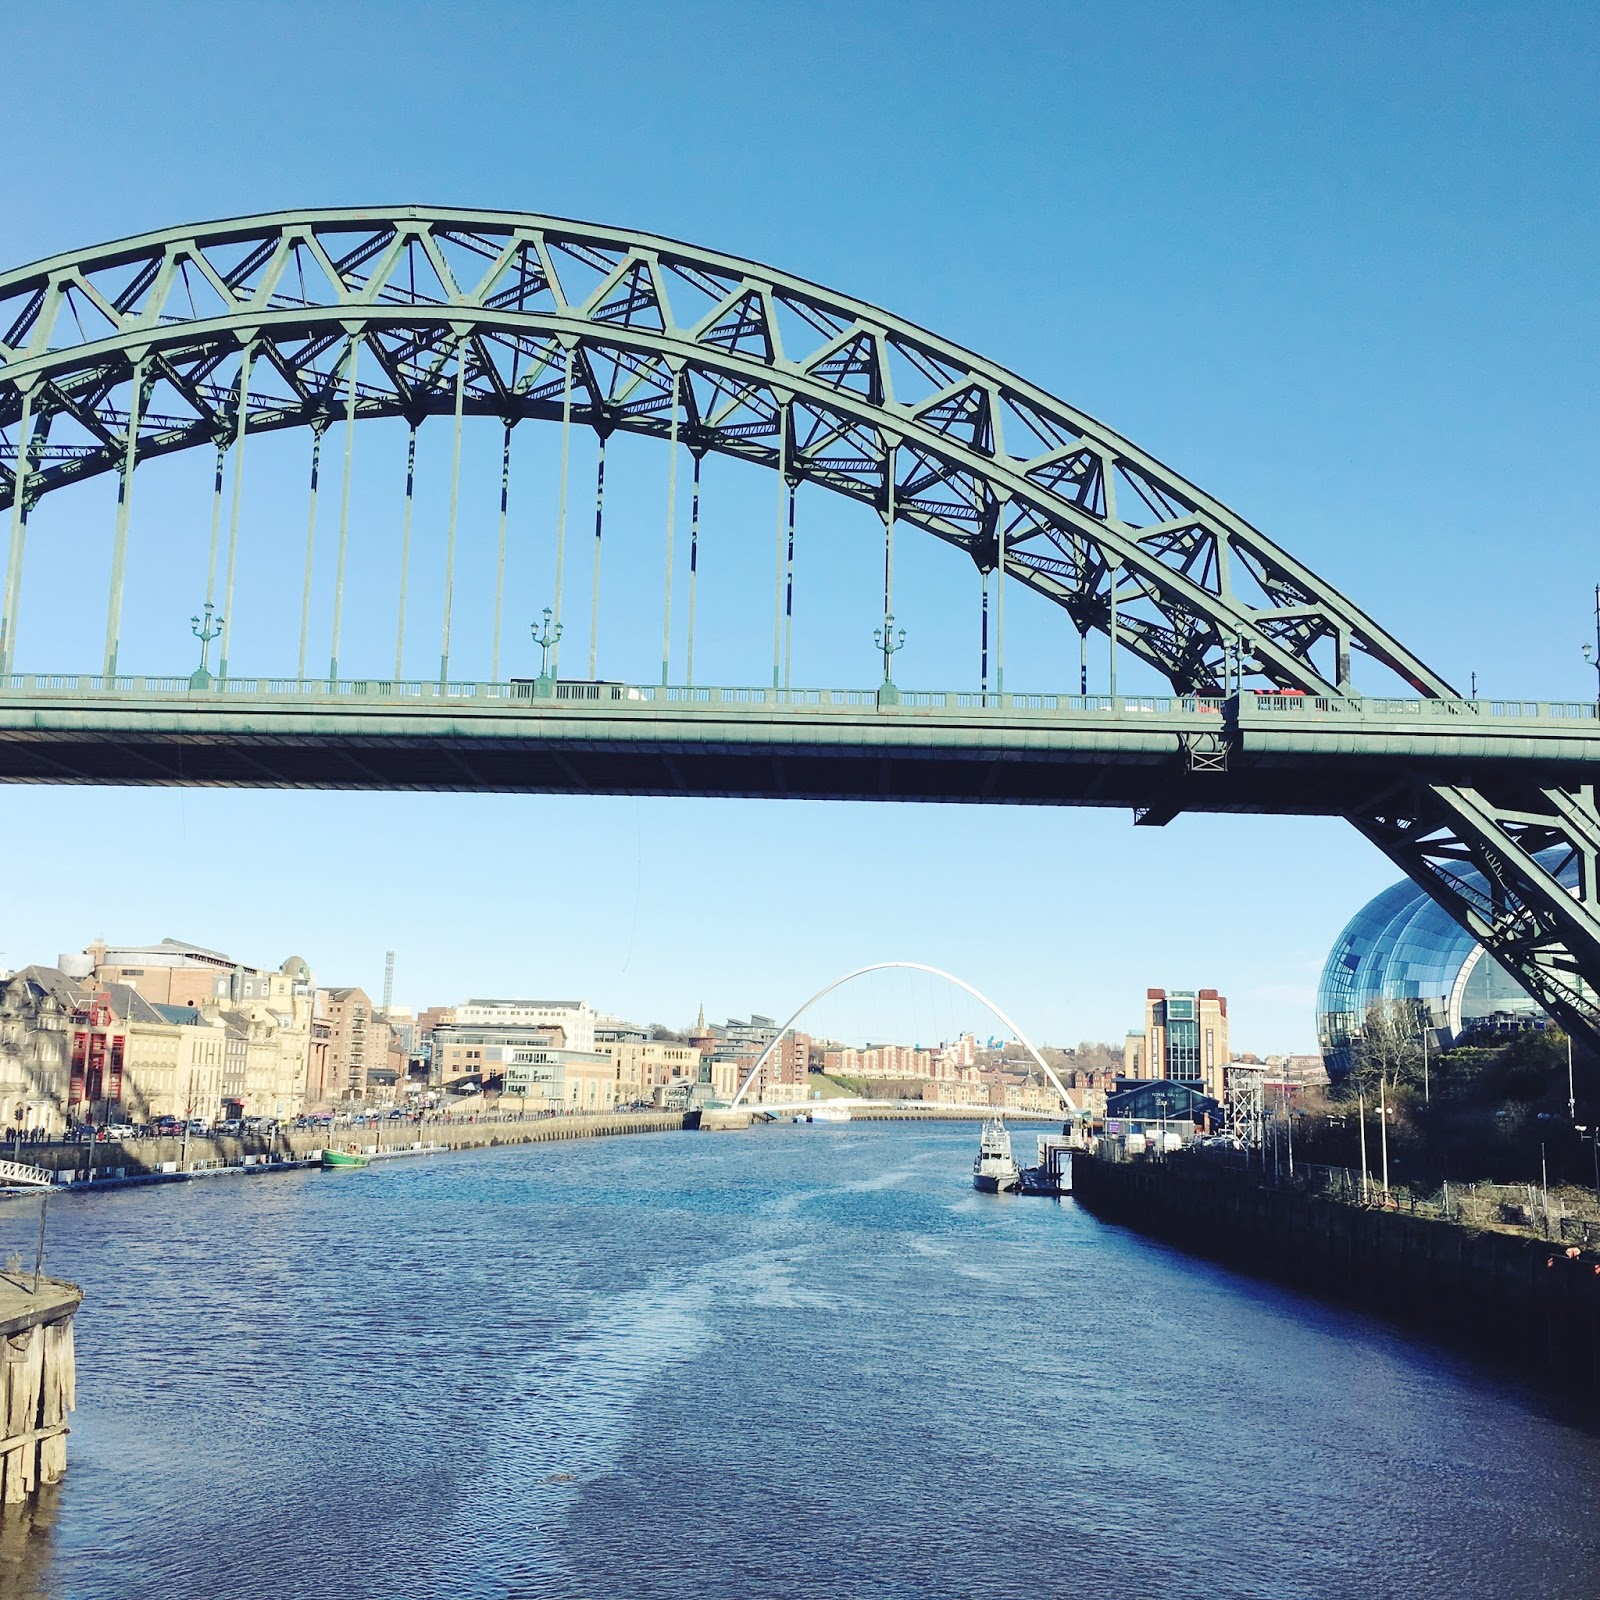 8 Things I've Learned Living in Newcastle - Tyne Bridge